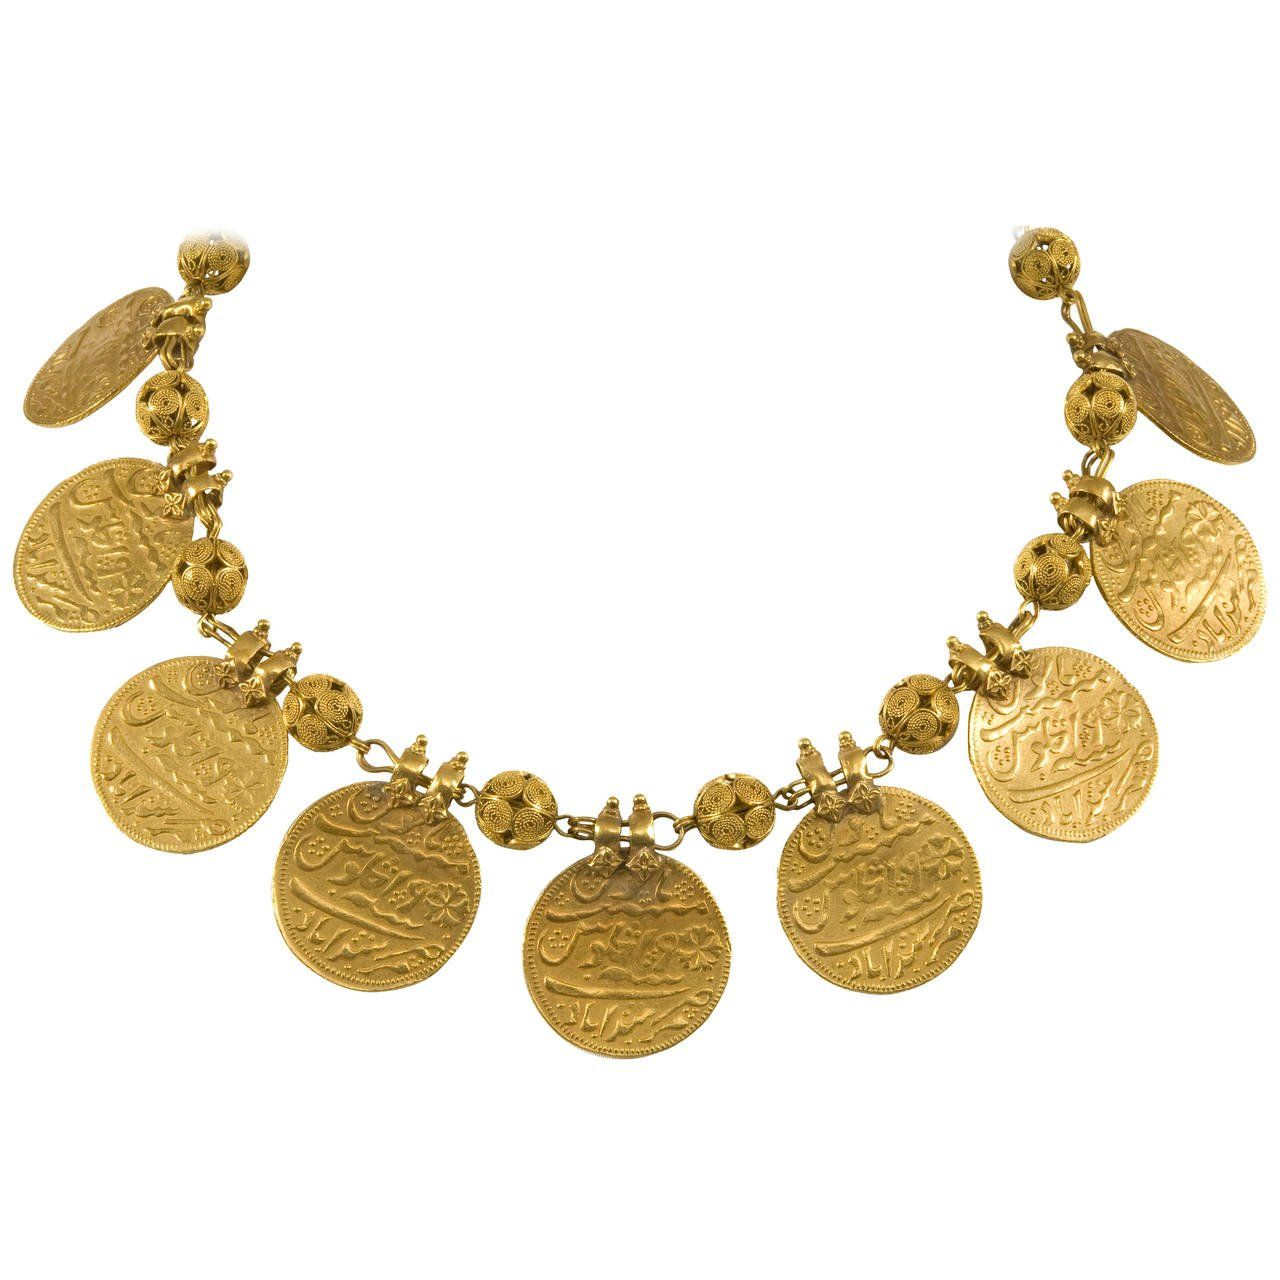 golden coin klada alquds product gold necklace jewelry